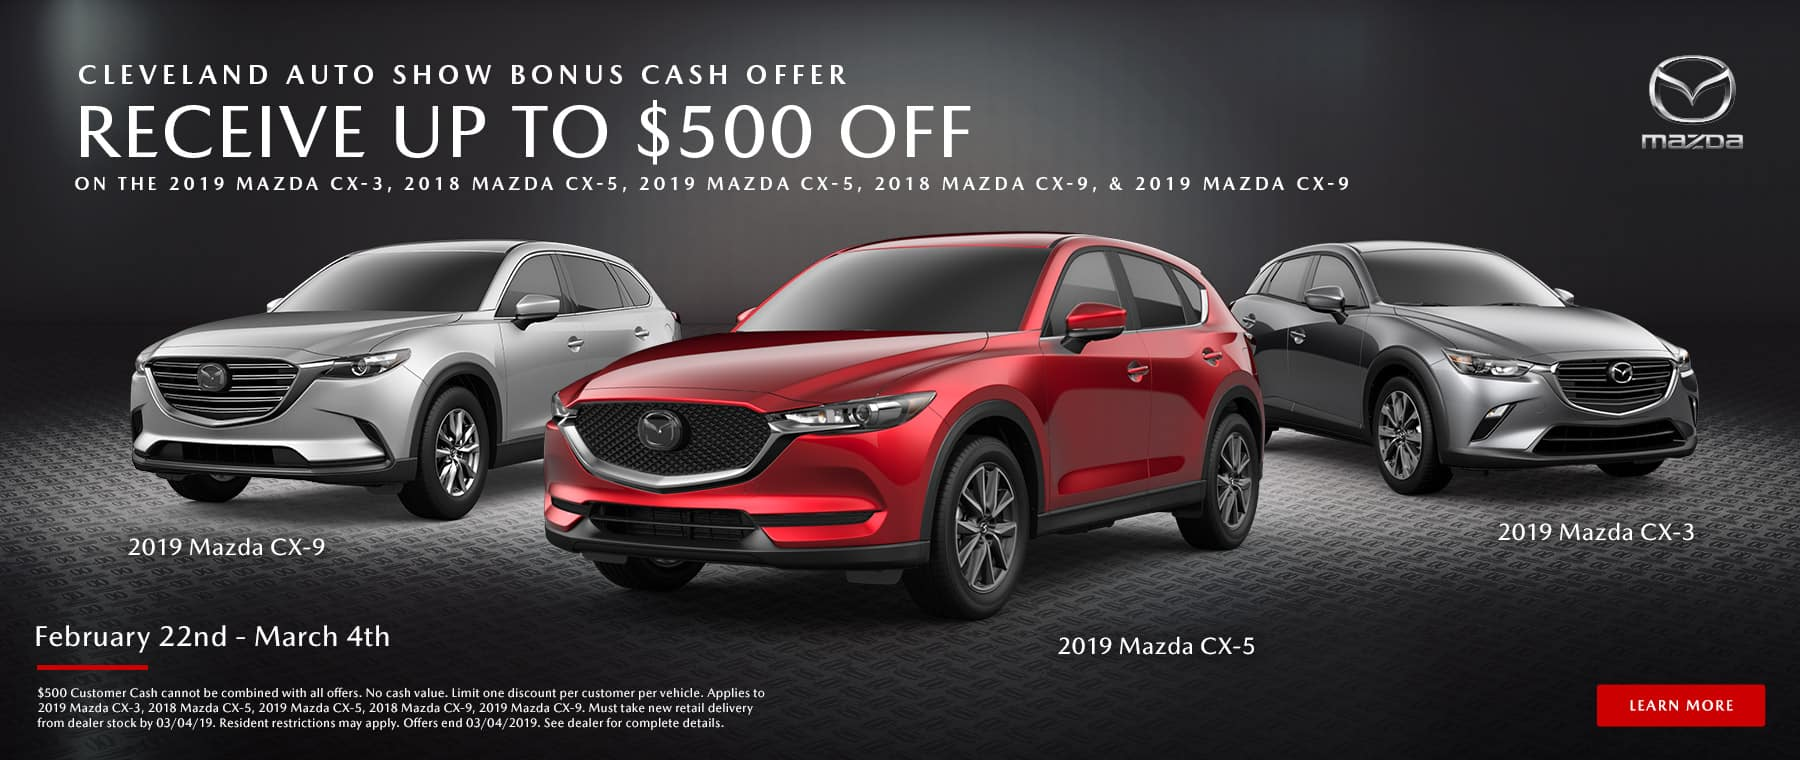 Celebrate the Cleveland Auto Show with extra savings for a limited time at Mazda of Bedford